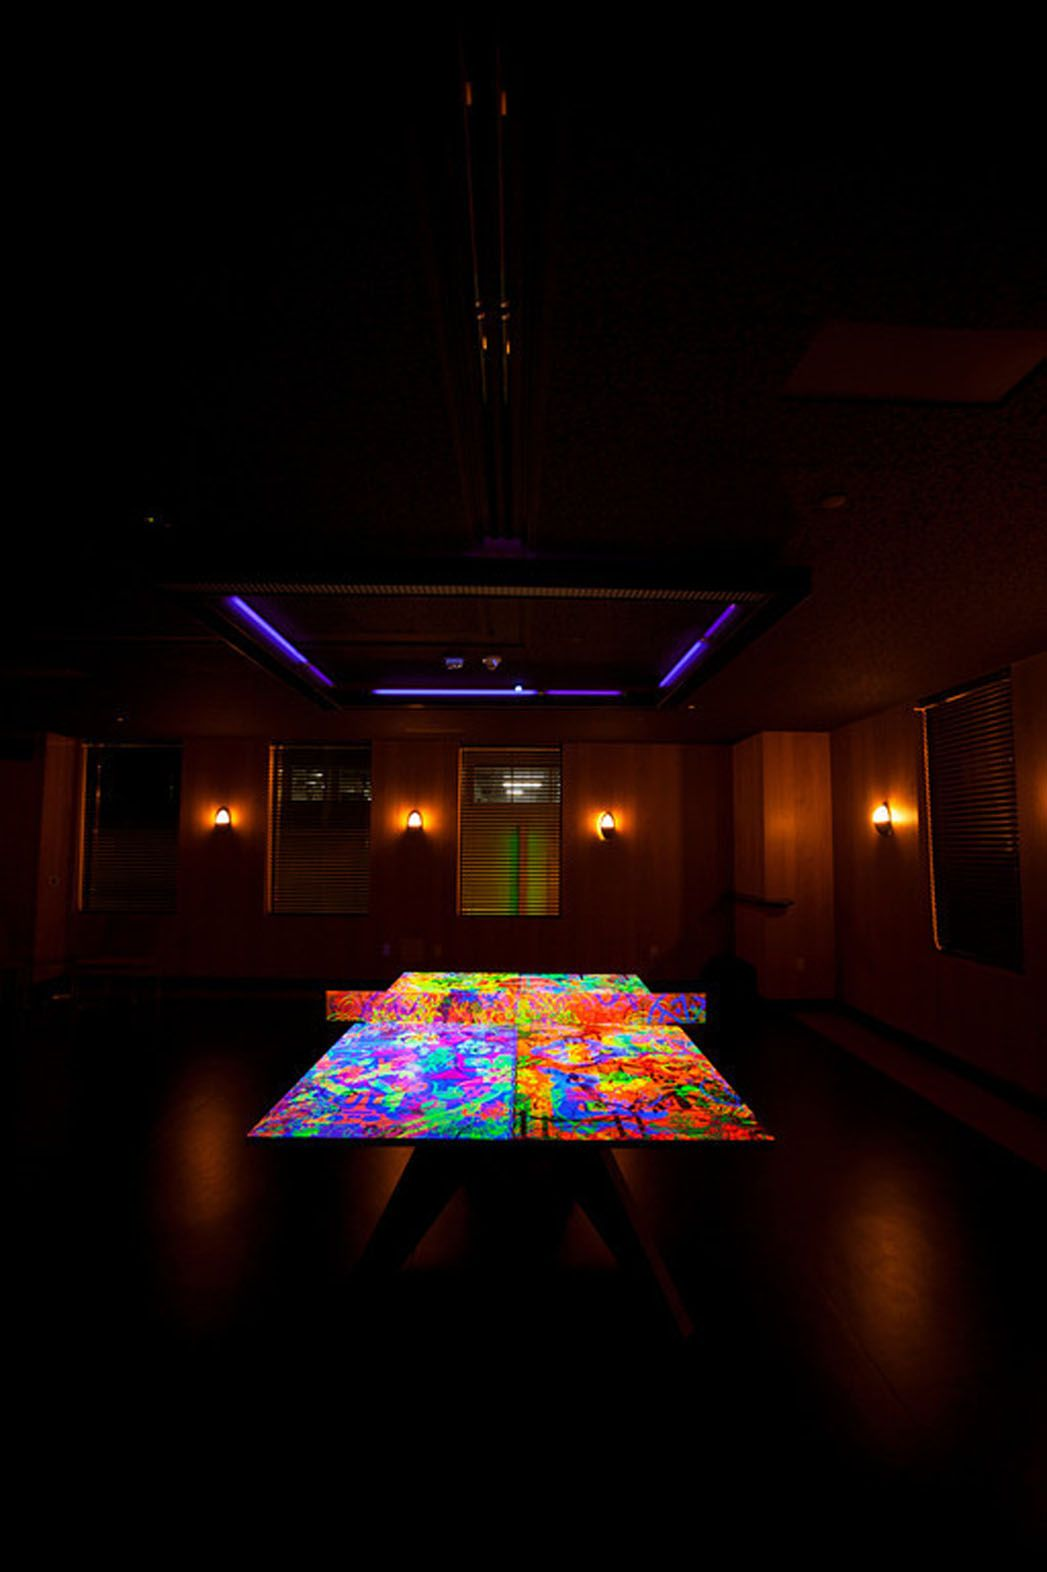 Artist Ryan Mcginness Black Light Ping Pong Table Was The Centerpiece Of A Party With Shepard Fairey As Special Guest Dj